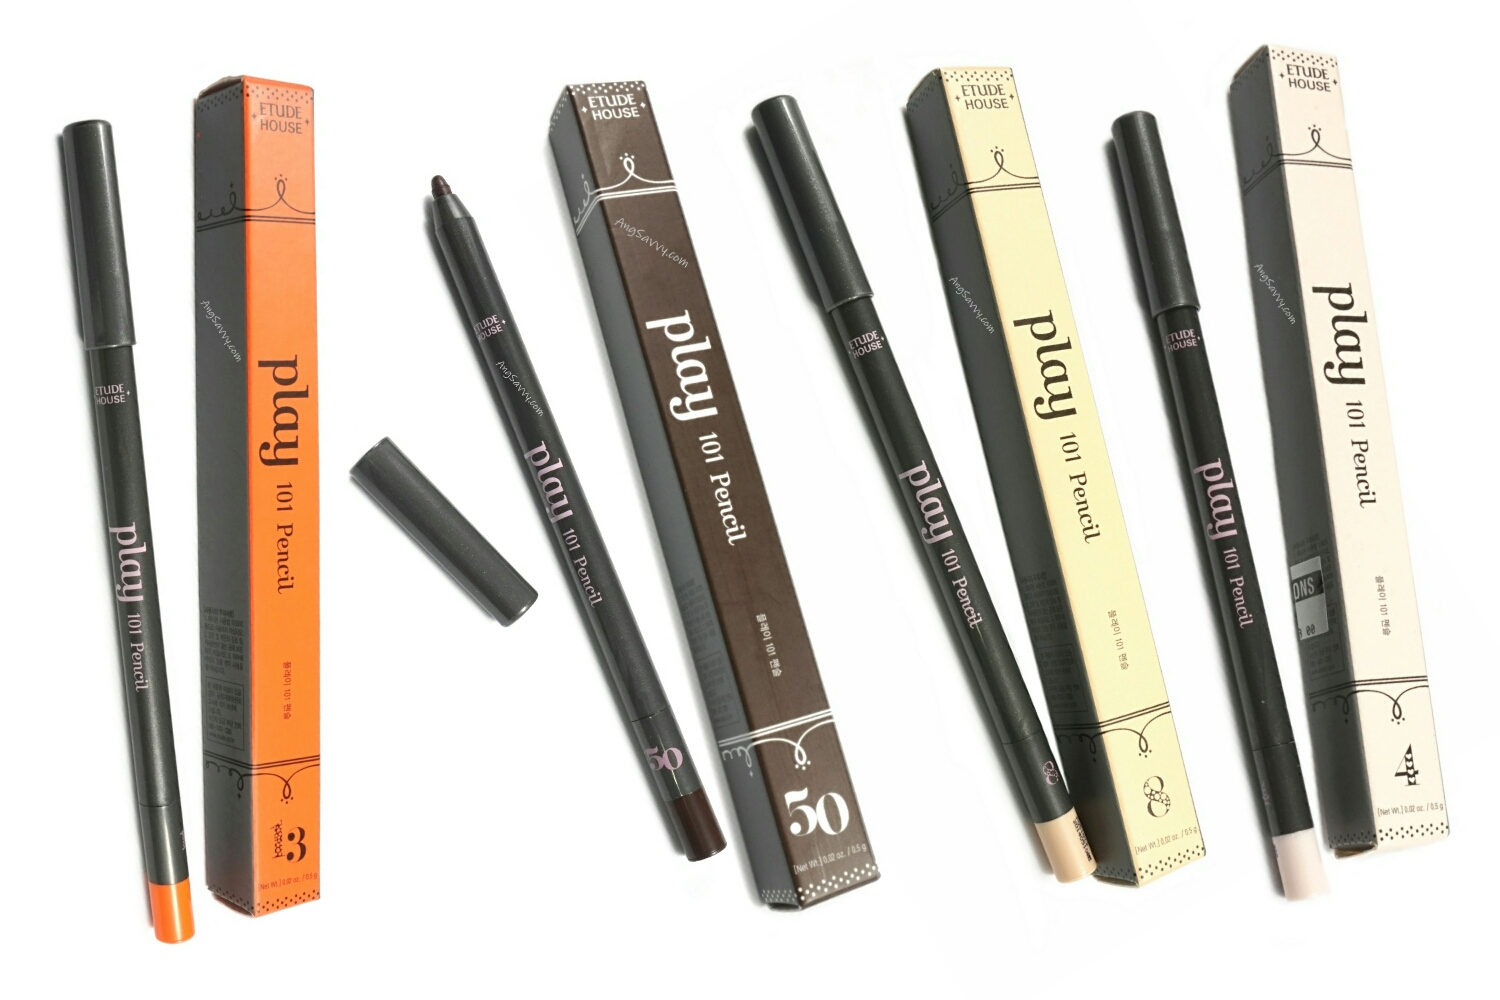 Etude House Play 101 Pencils 4, 8, 13, 50